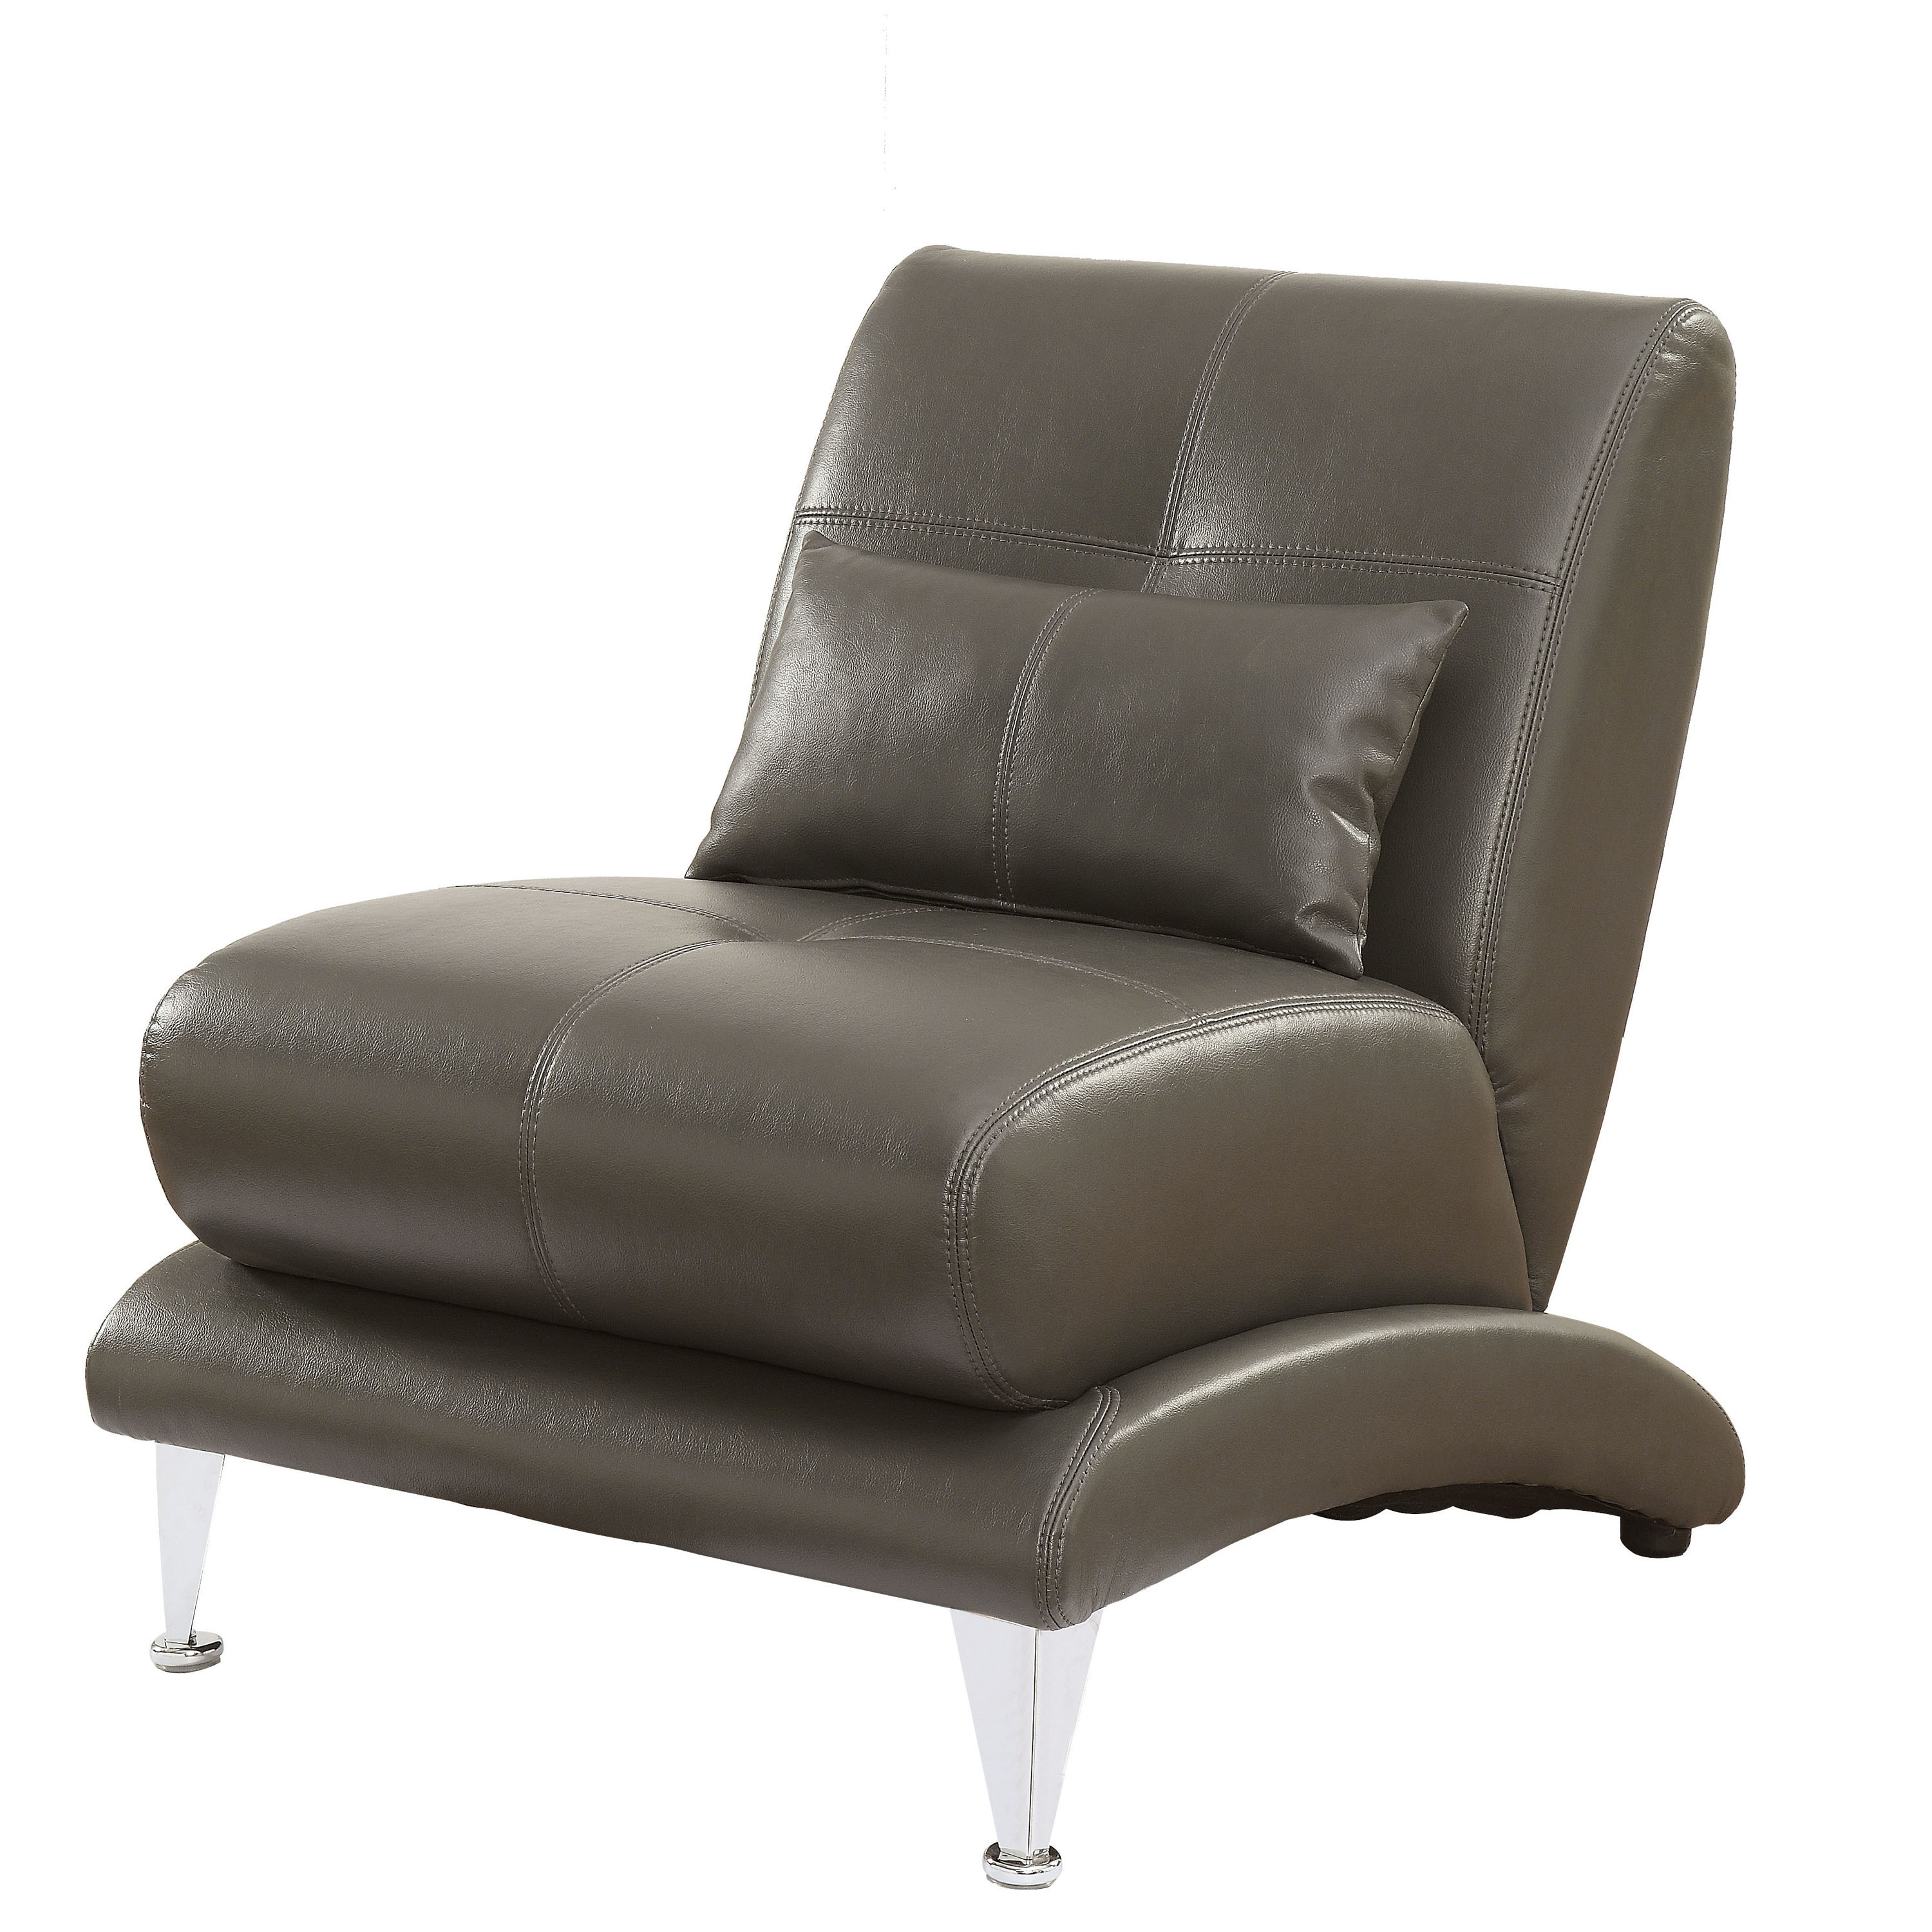 Furniture of America  Max Modern Tufted Leatherette Accent Chair Grey